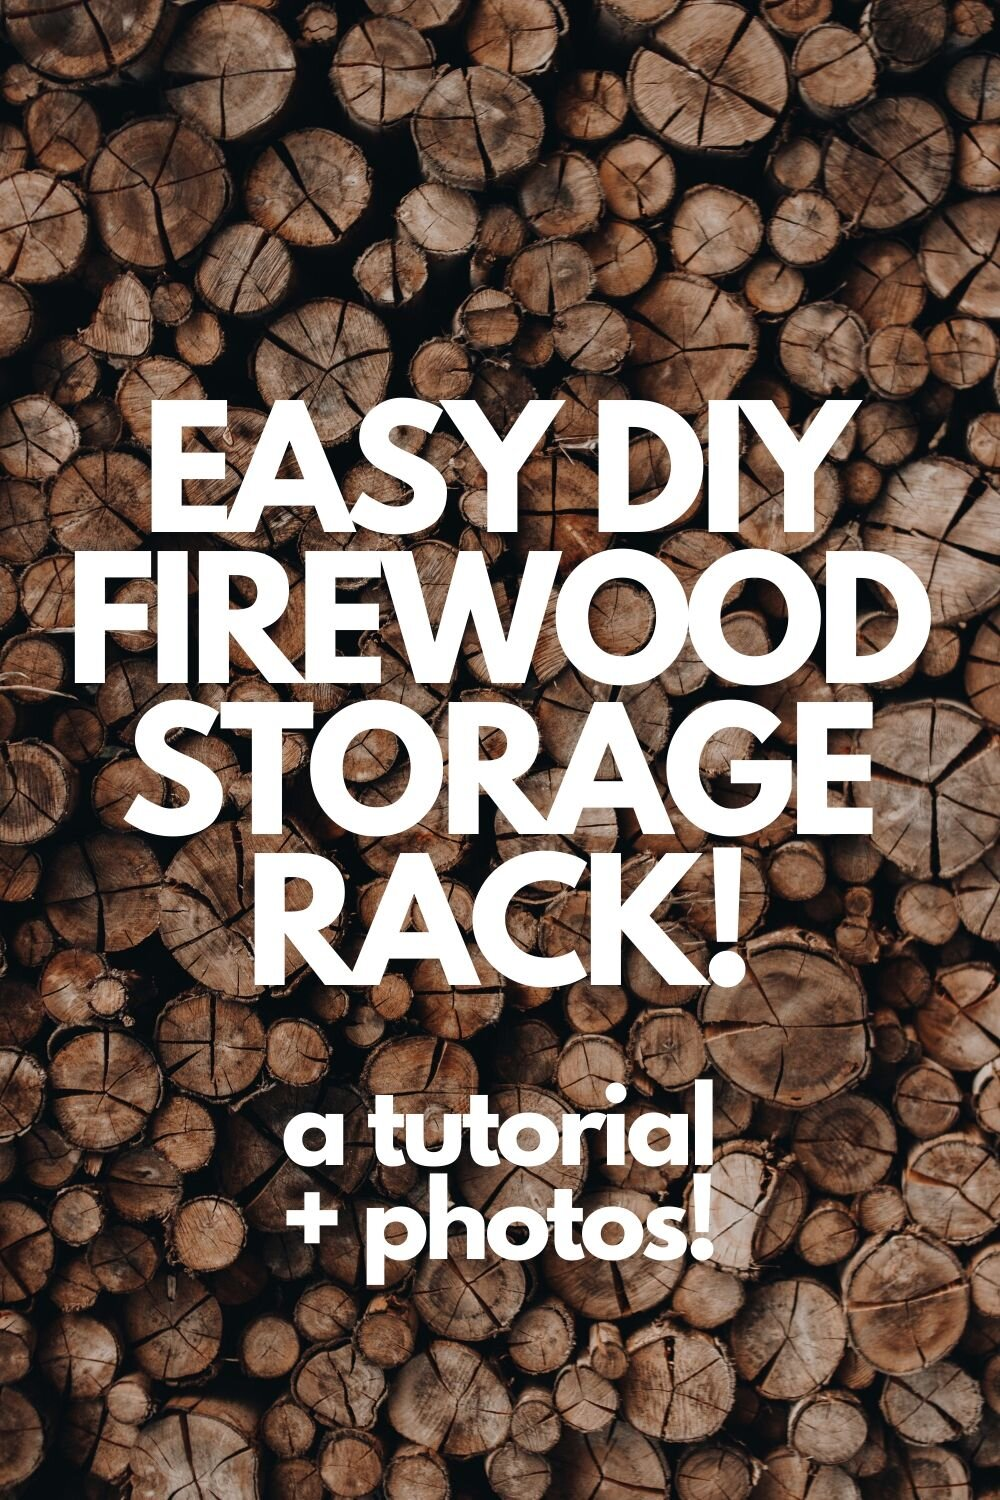 As easy DIY firewood storage rack using scrap wood!